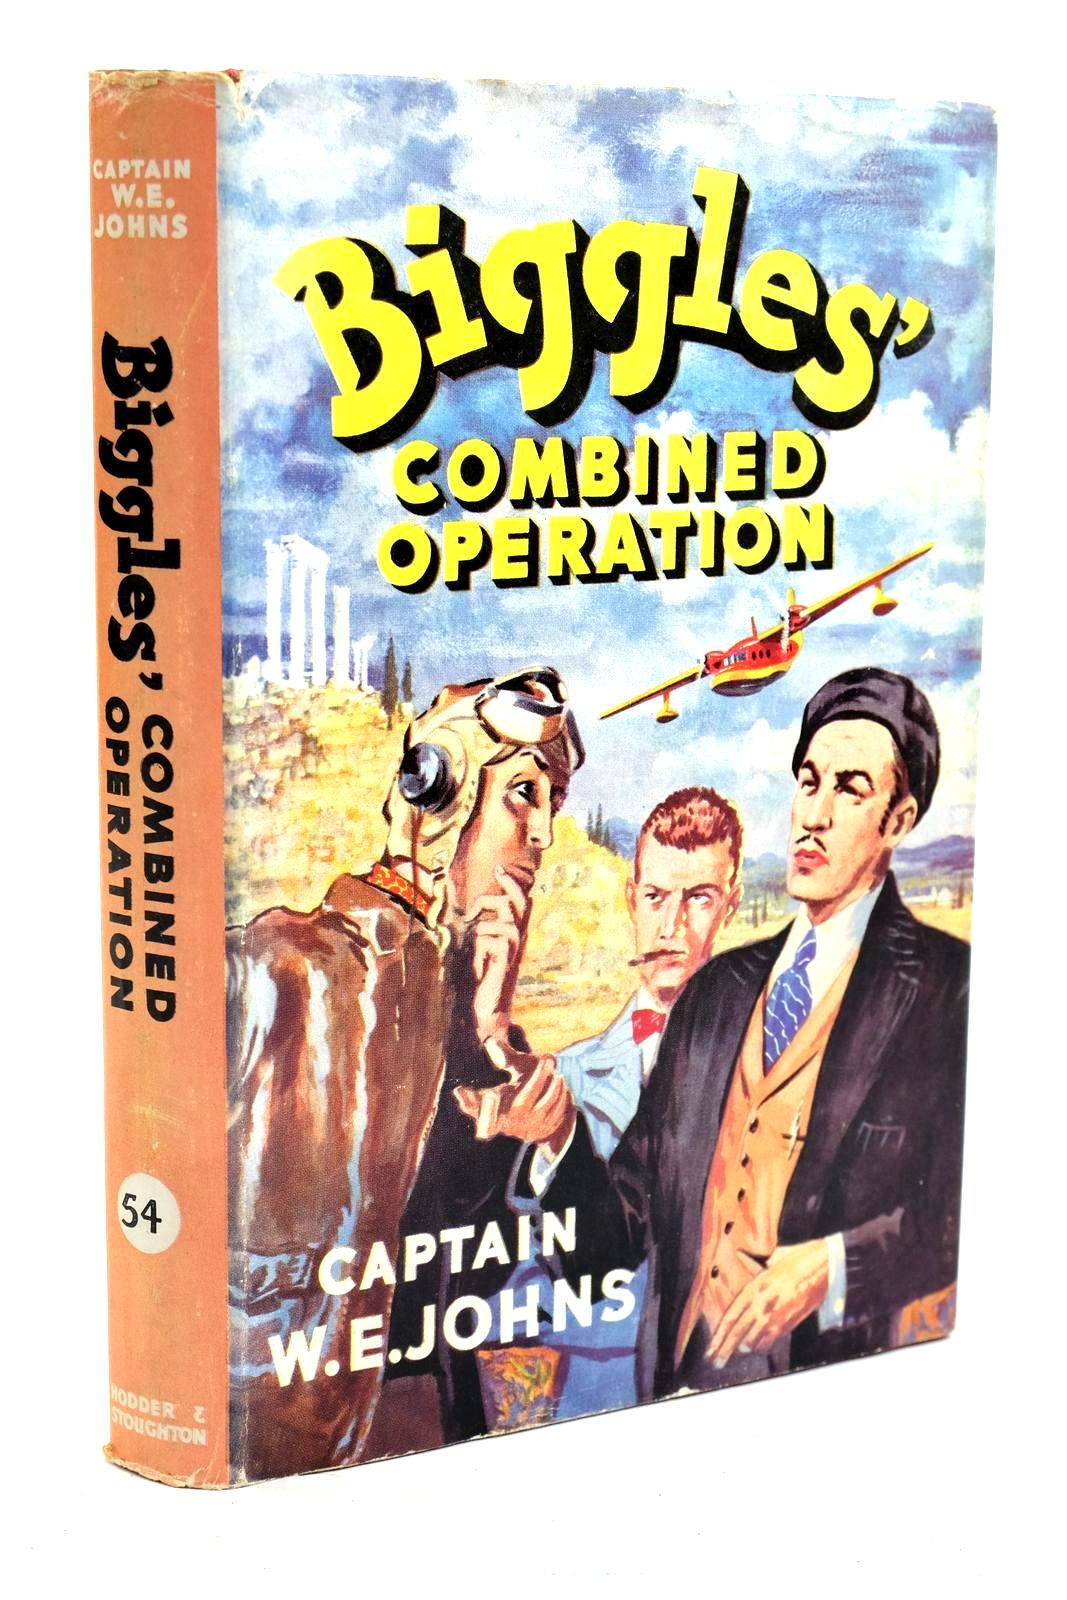 Photo of BIGGLES' COMBINED OPERATION written by Johns, W.E. illustrated by Stead,  published by Hodder & Stoughton (STOCK CODE: 1320701)  for sale by Stella & Rose's Books